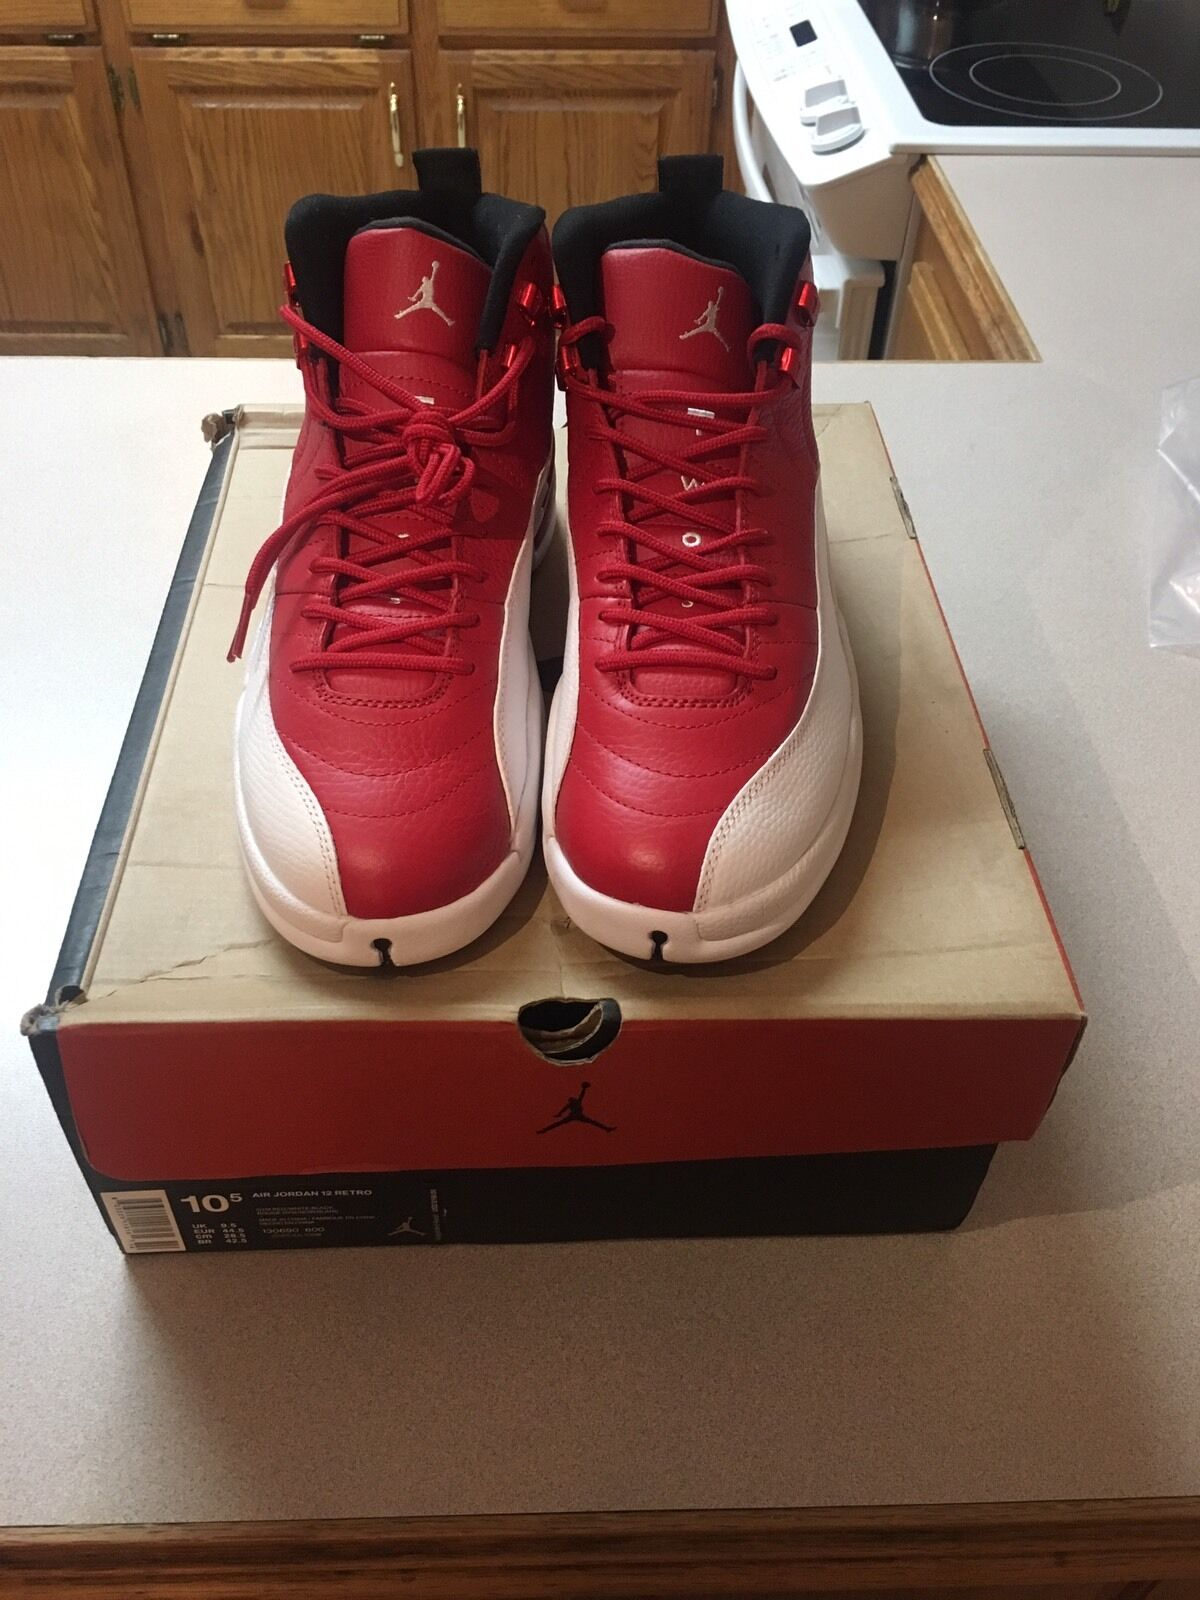 Jordan 12 gym red size 10.5